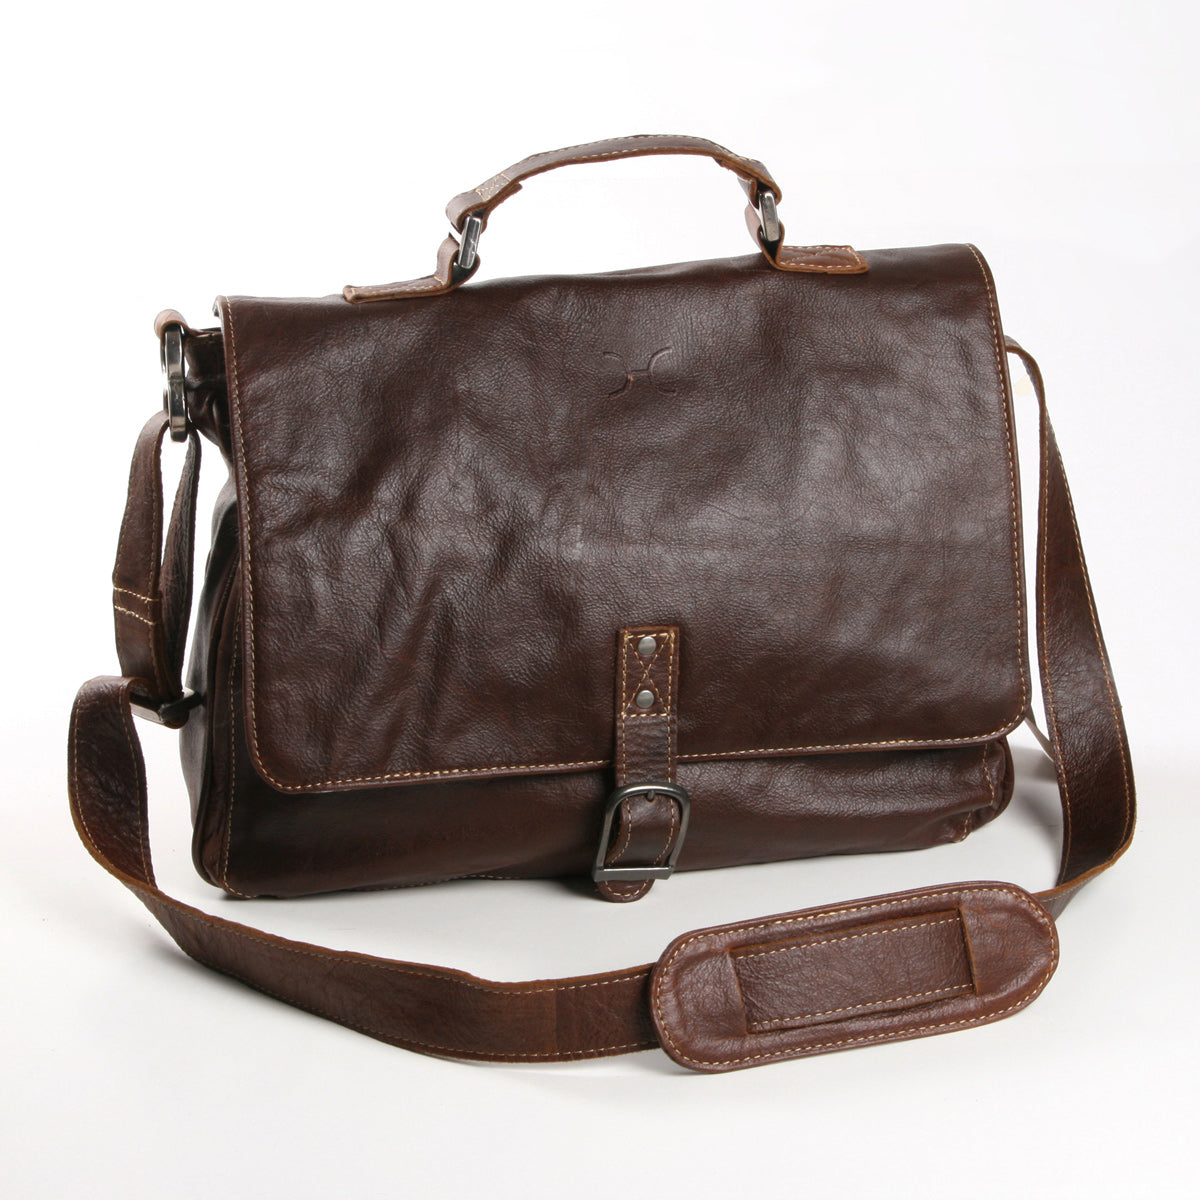 Thandana Work Satchel - Brown - Zufrique Boutique